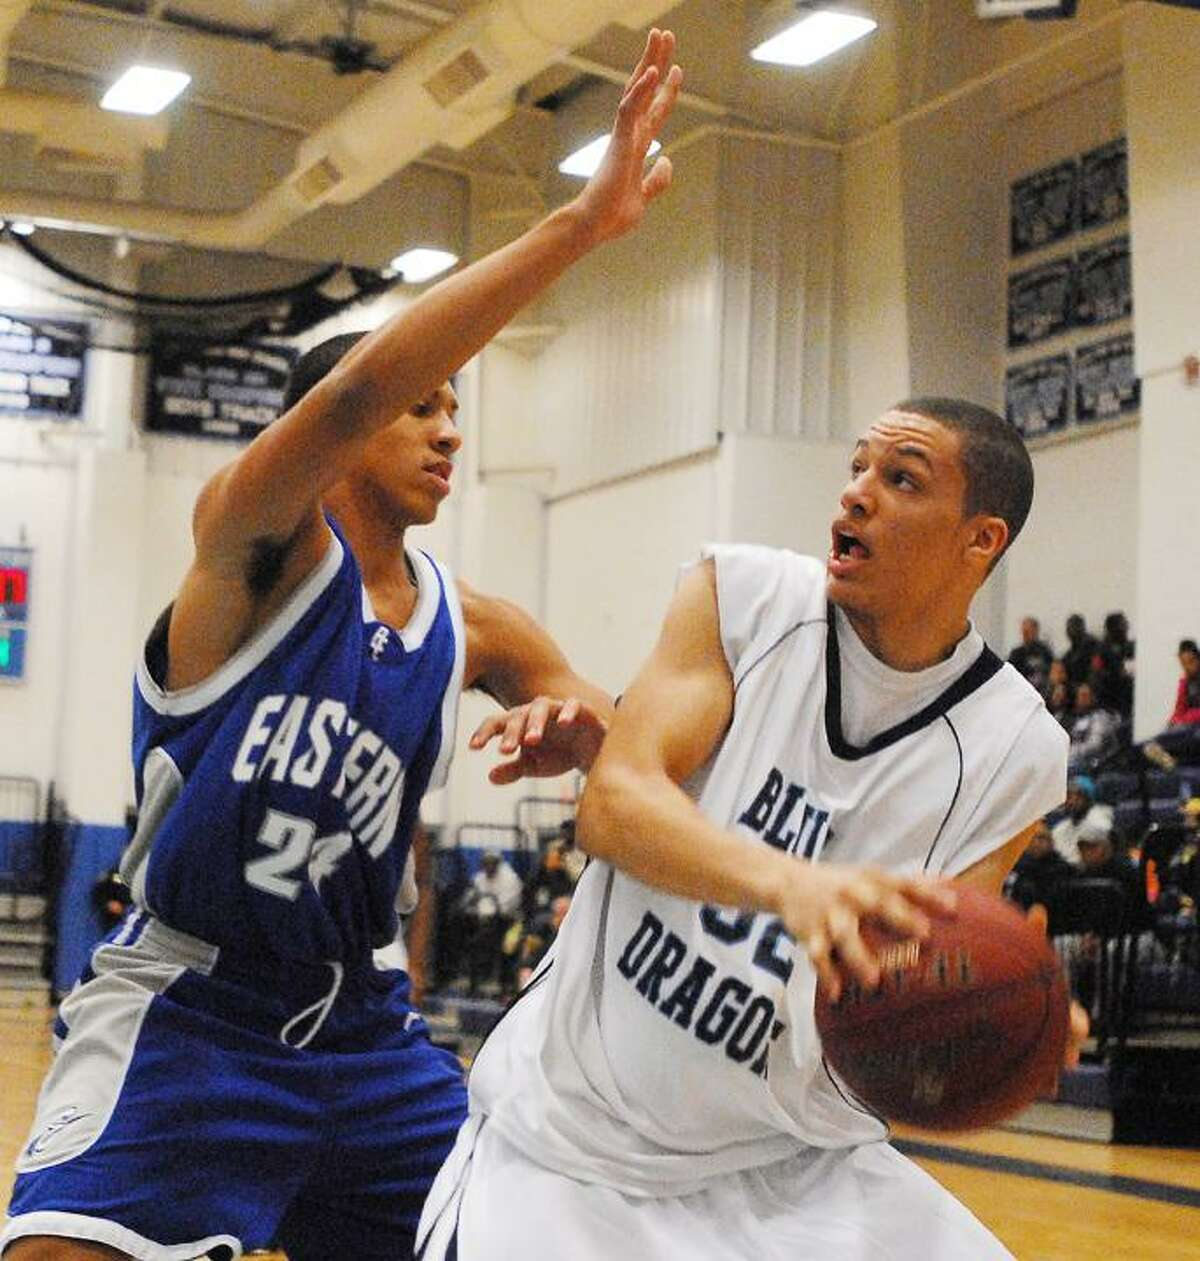 Catherine Avalone/The Middletown PressMiddletown's Brandon Simmons looks to make a move against Bristol Eastern's Kevin Love in Monday night's game in Middletown. The Blue Dragons defeated Bristol Eastern 70-46.